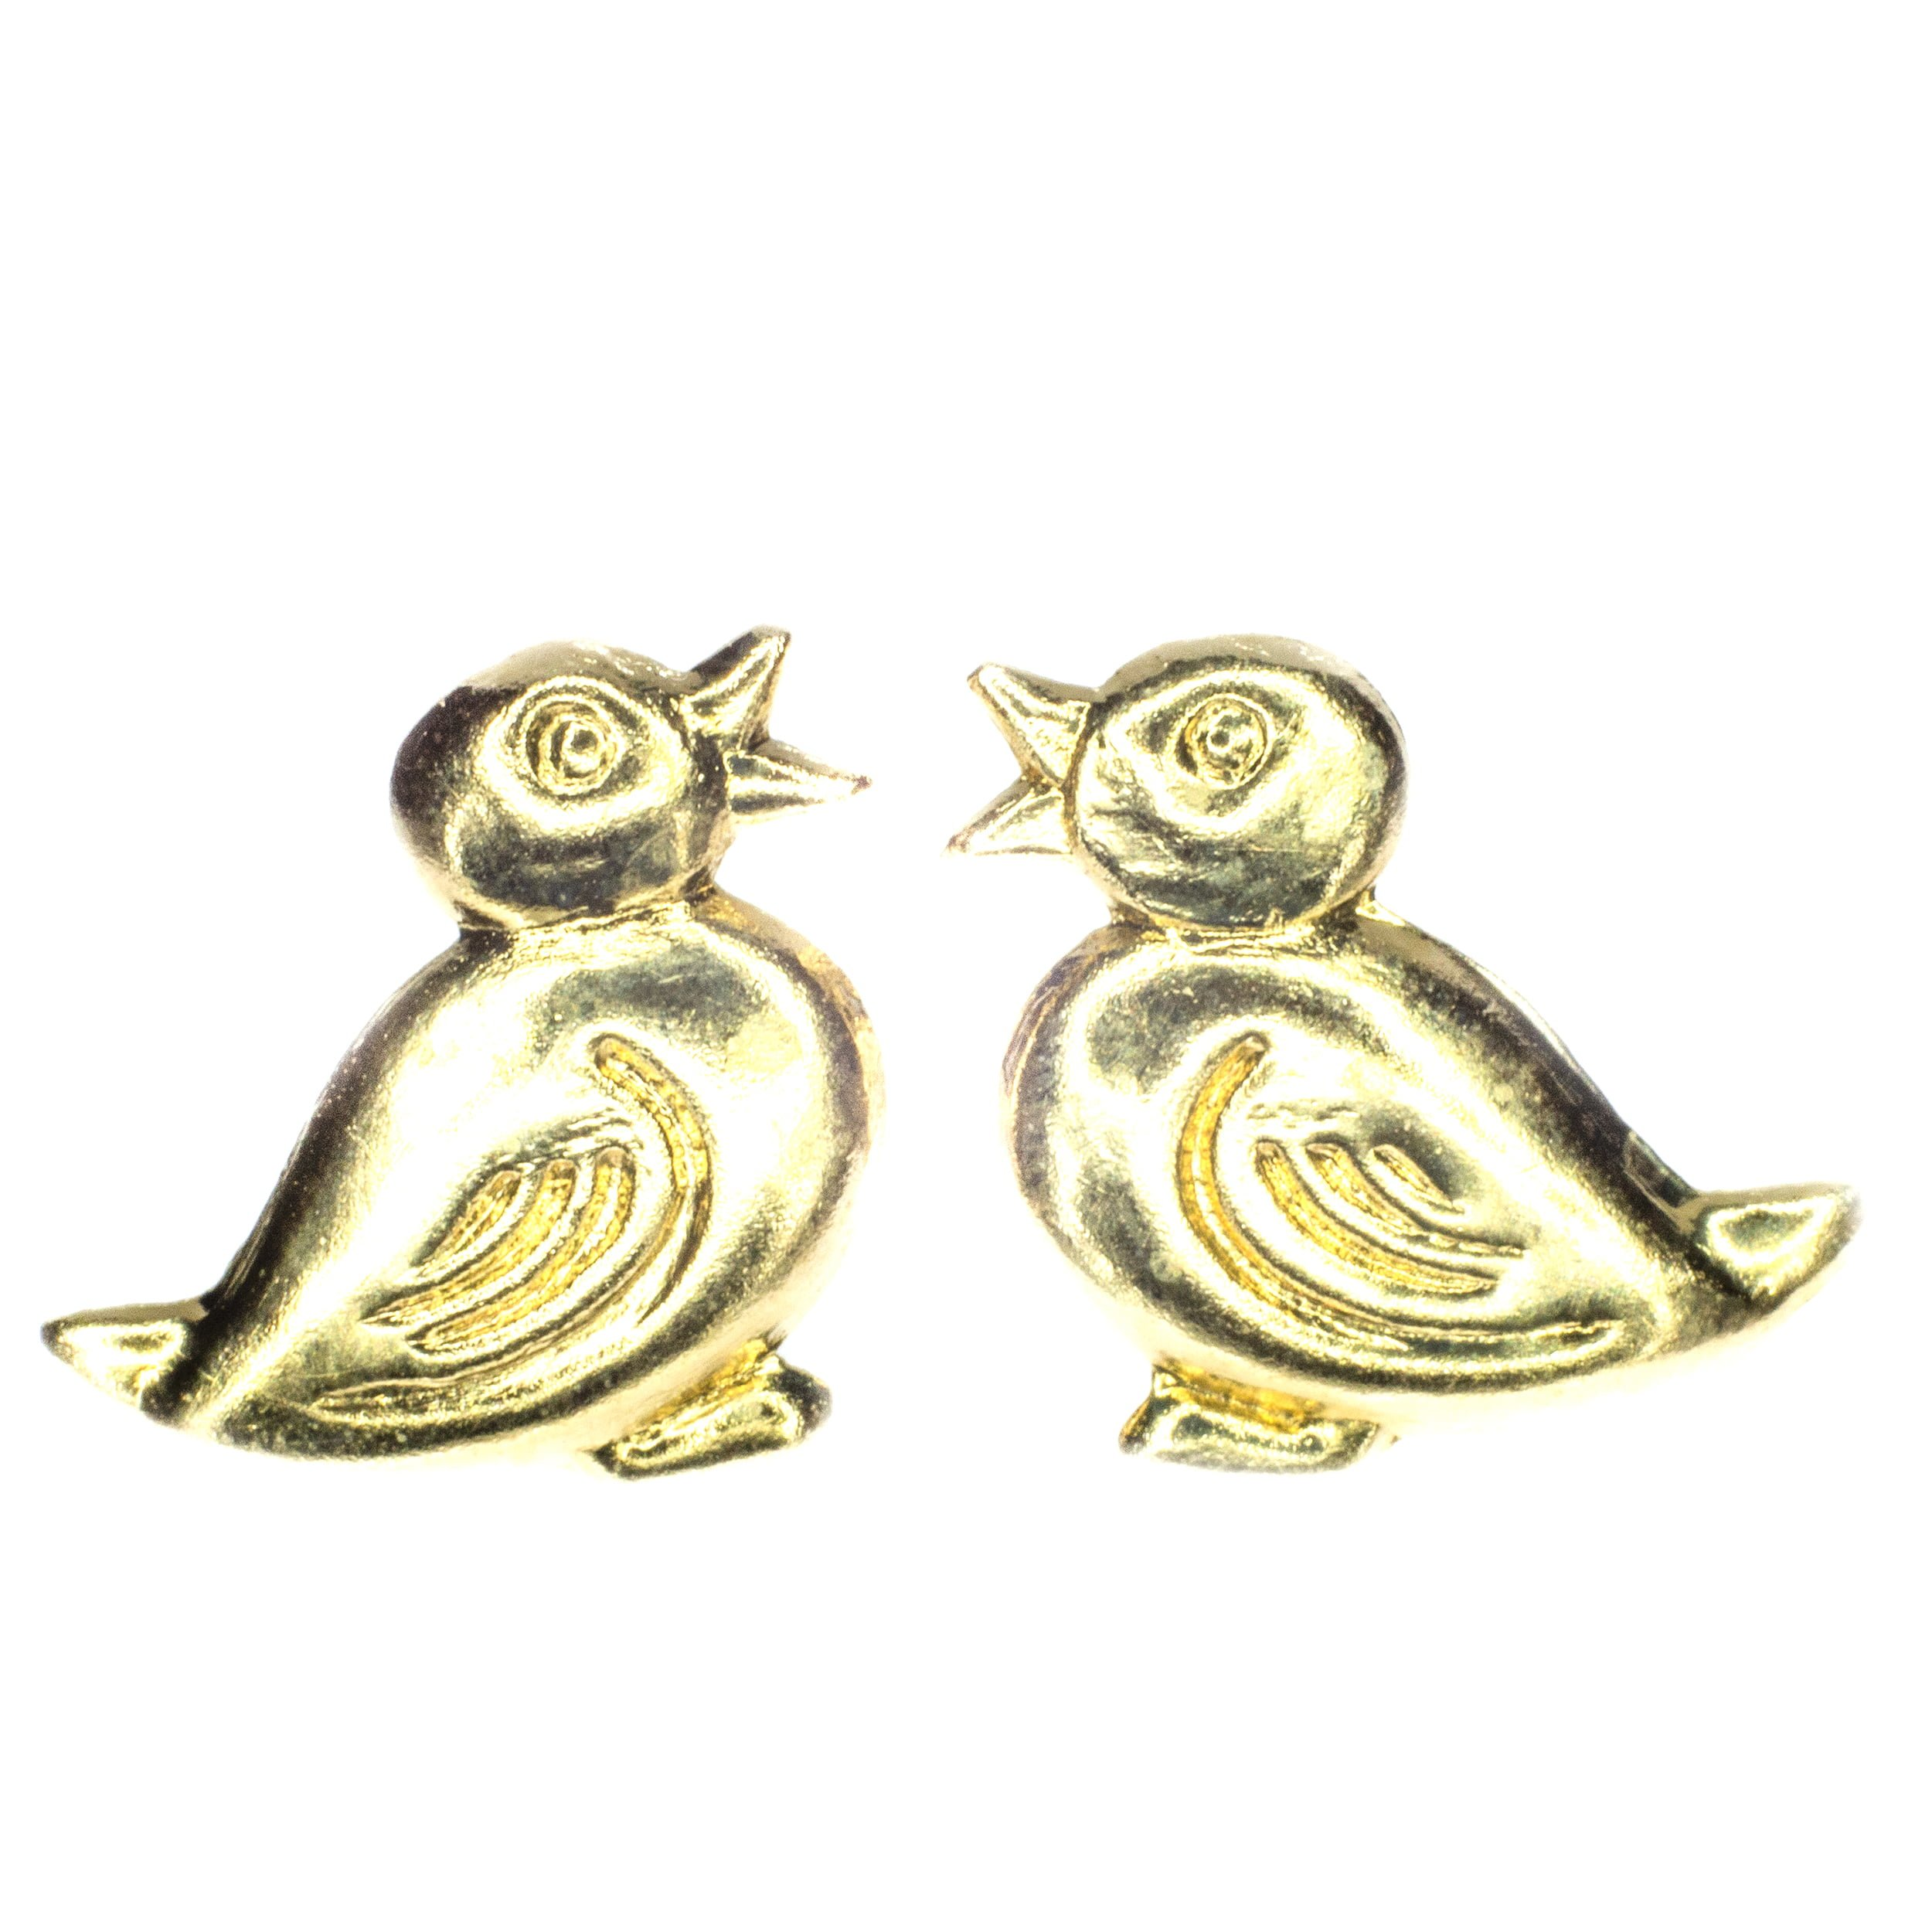 10mm duck stud earring 9ct yellow gold alt 1